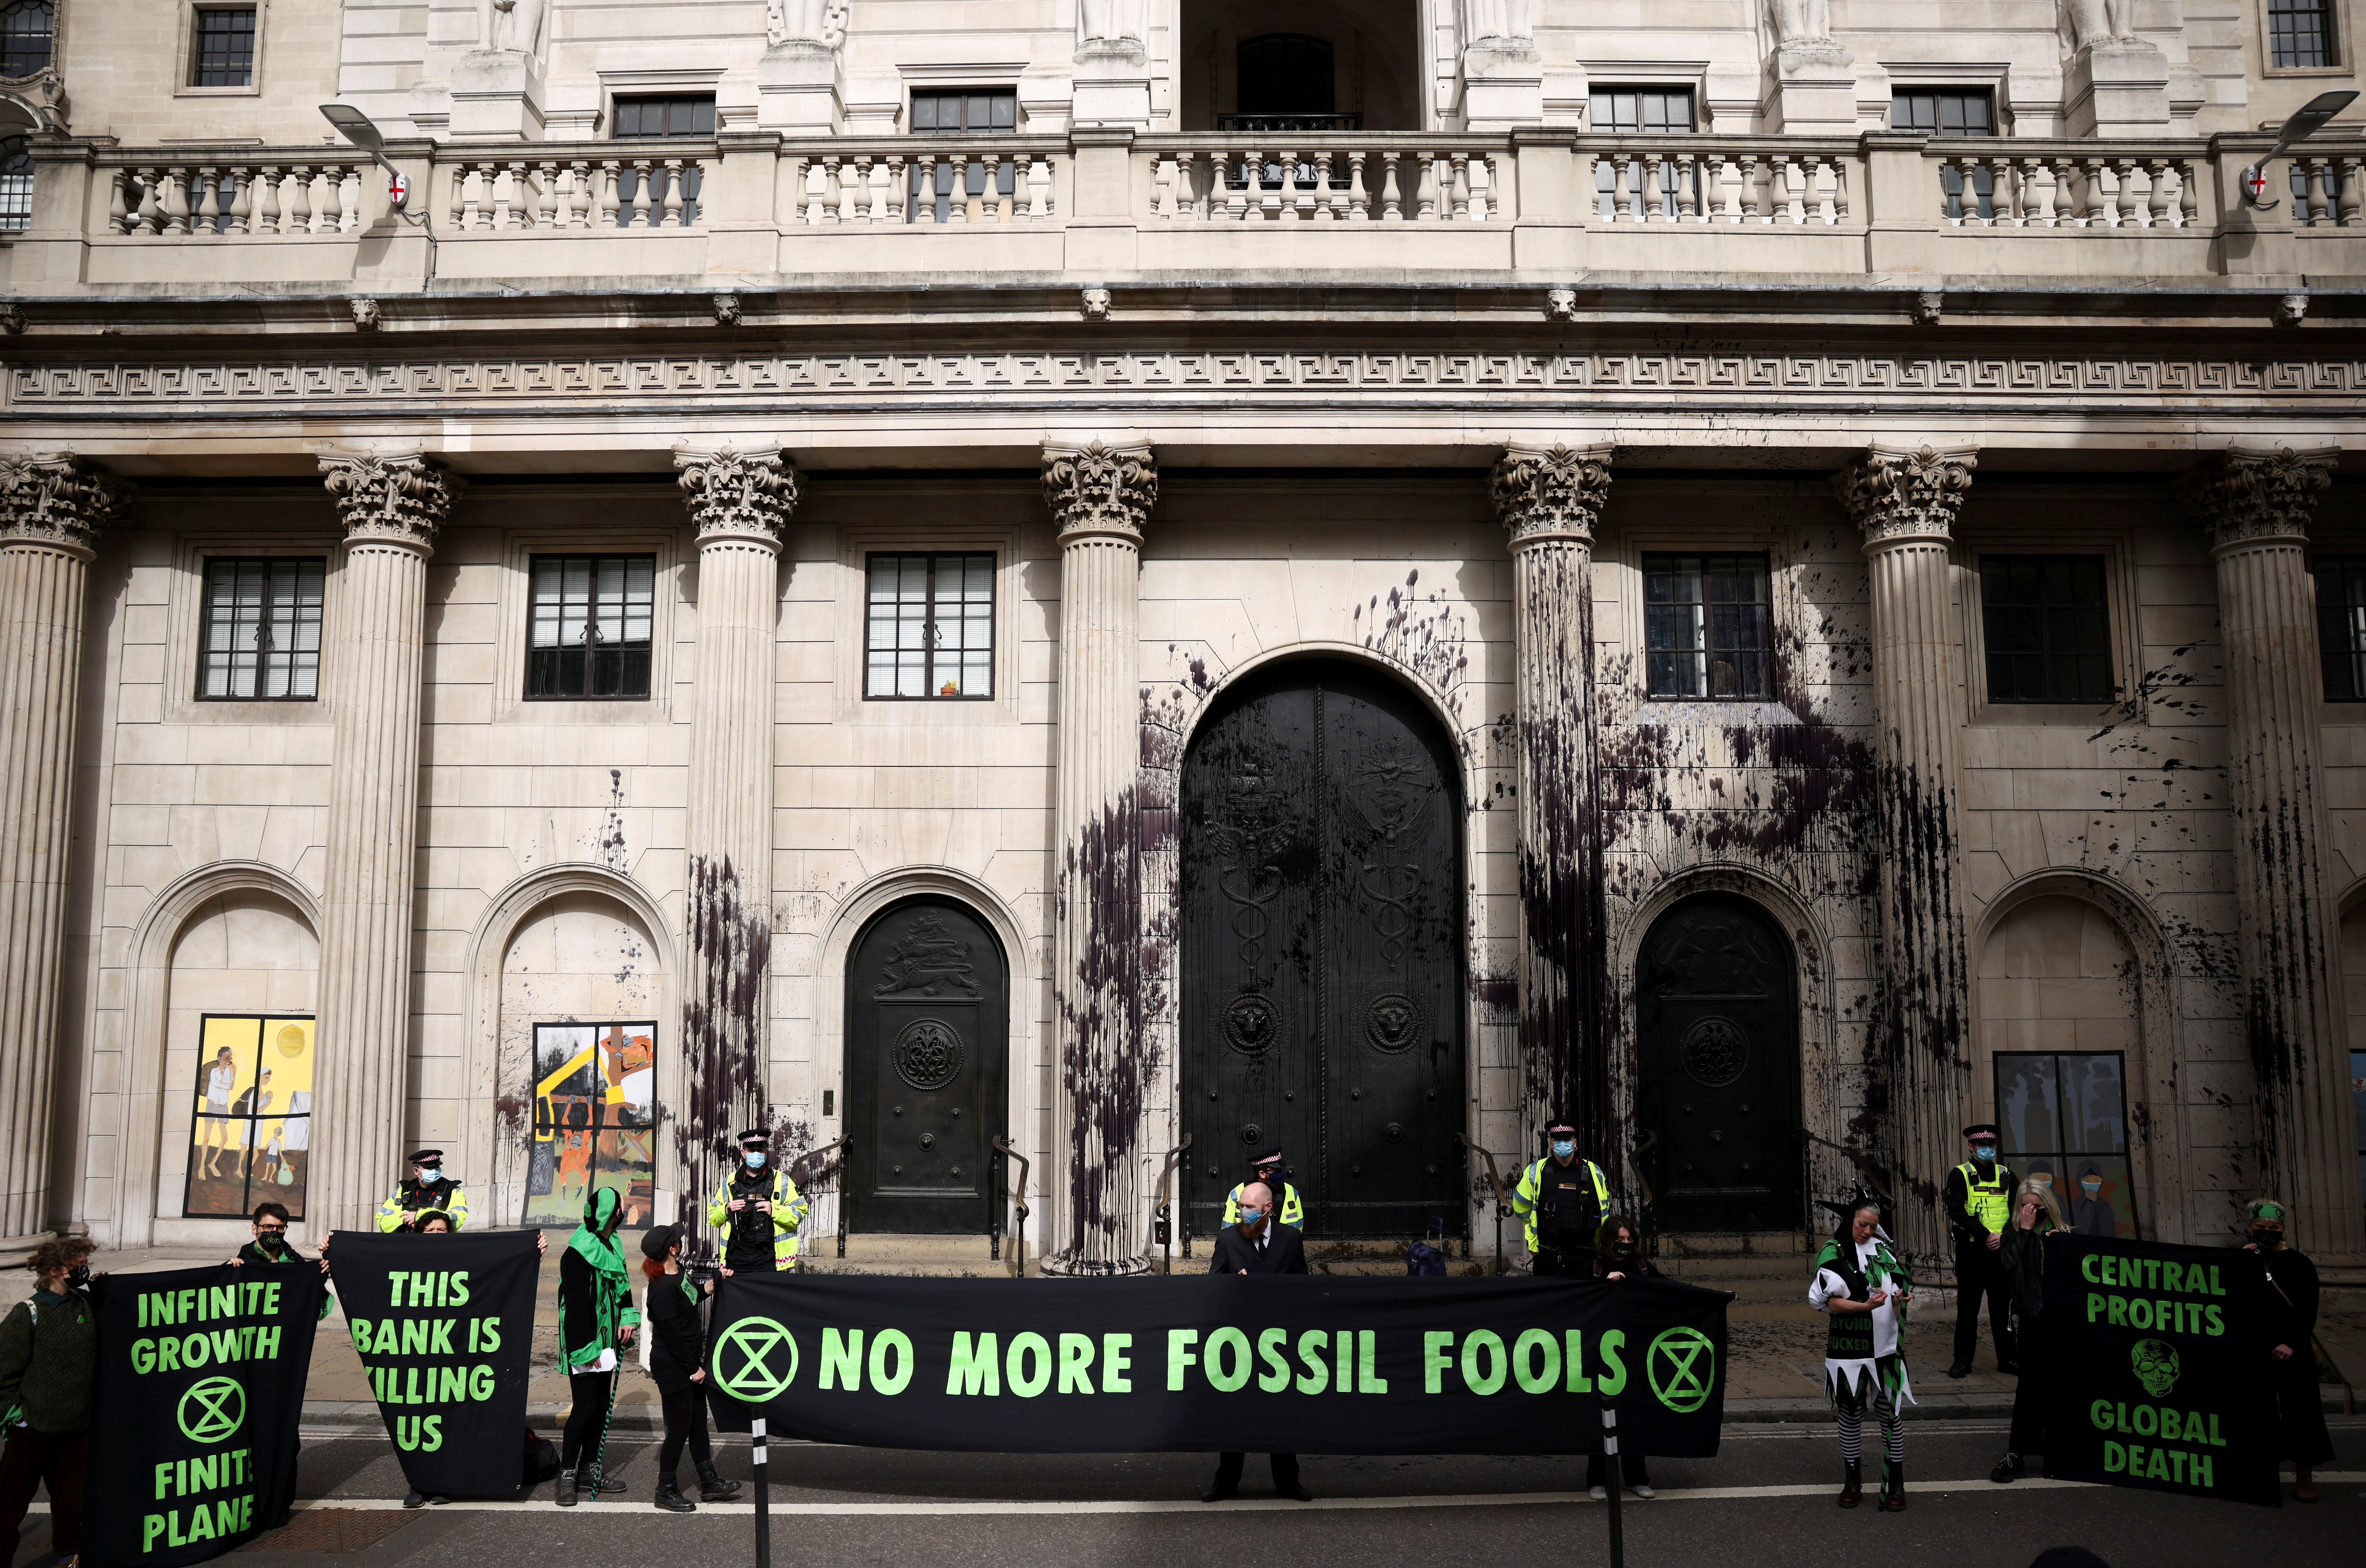 Activists from the Extinction Rebellion, a global environmental movement, protest outside the Bank of England, in London, Britain, April 1, 2021. REUTERS/Henry Nicholls